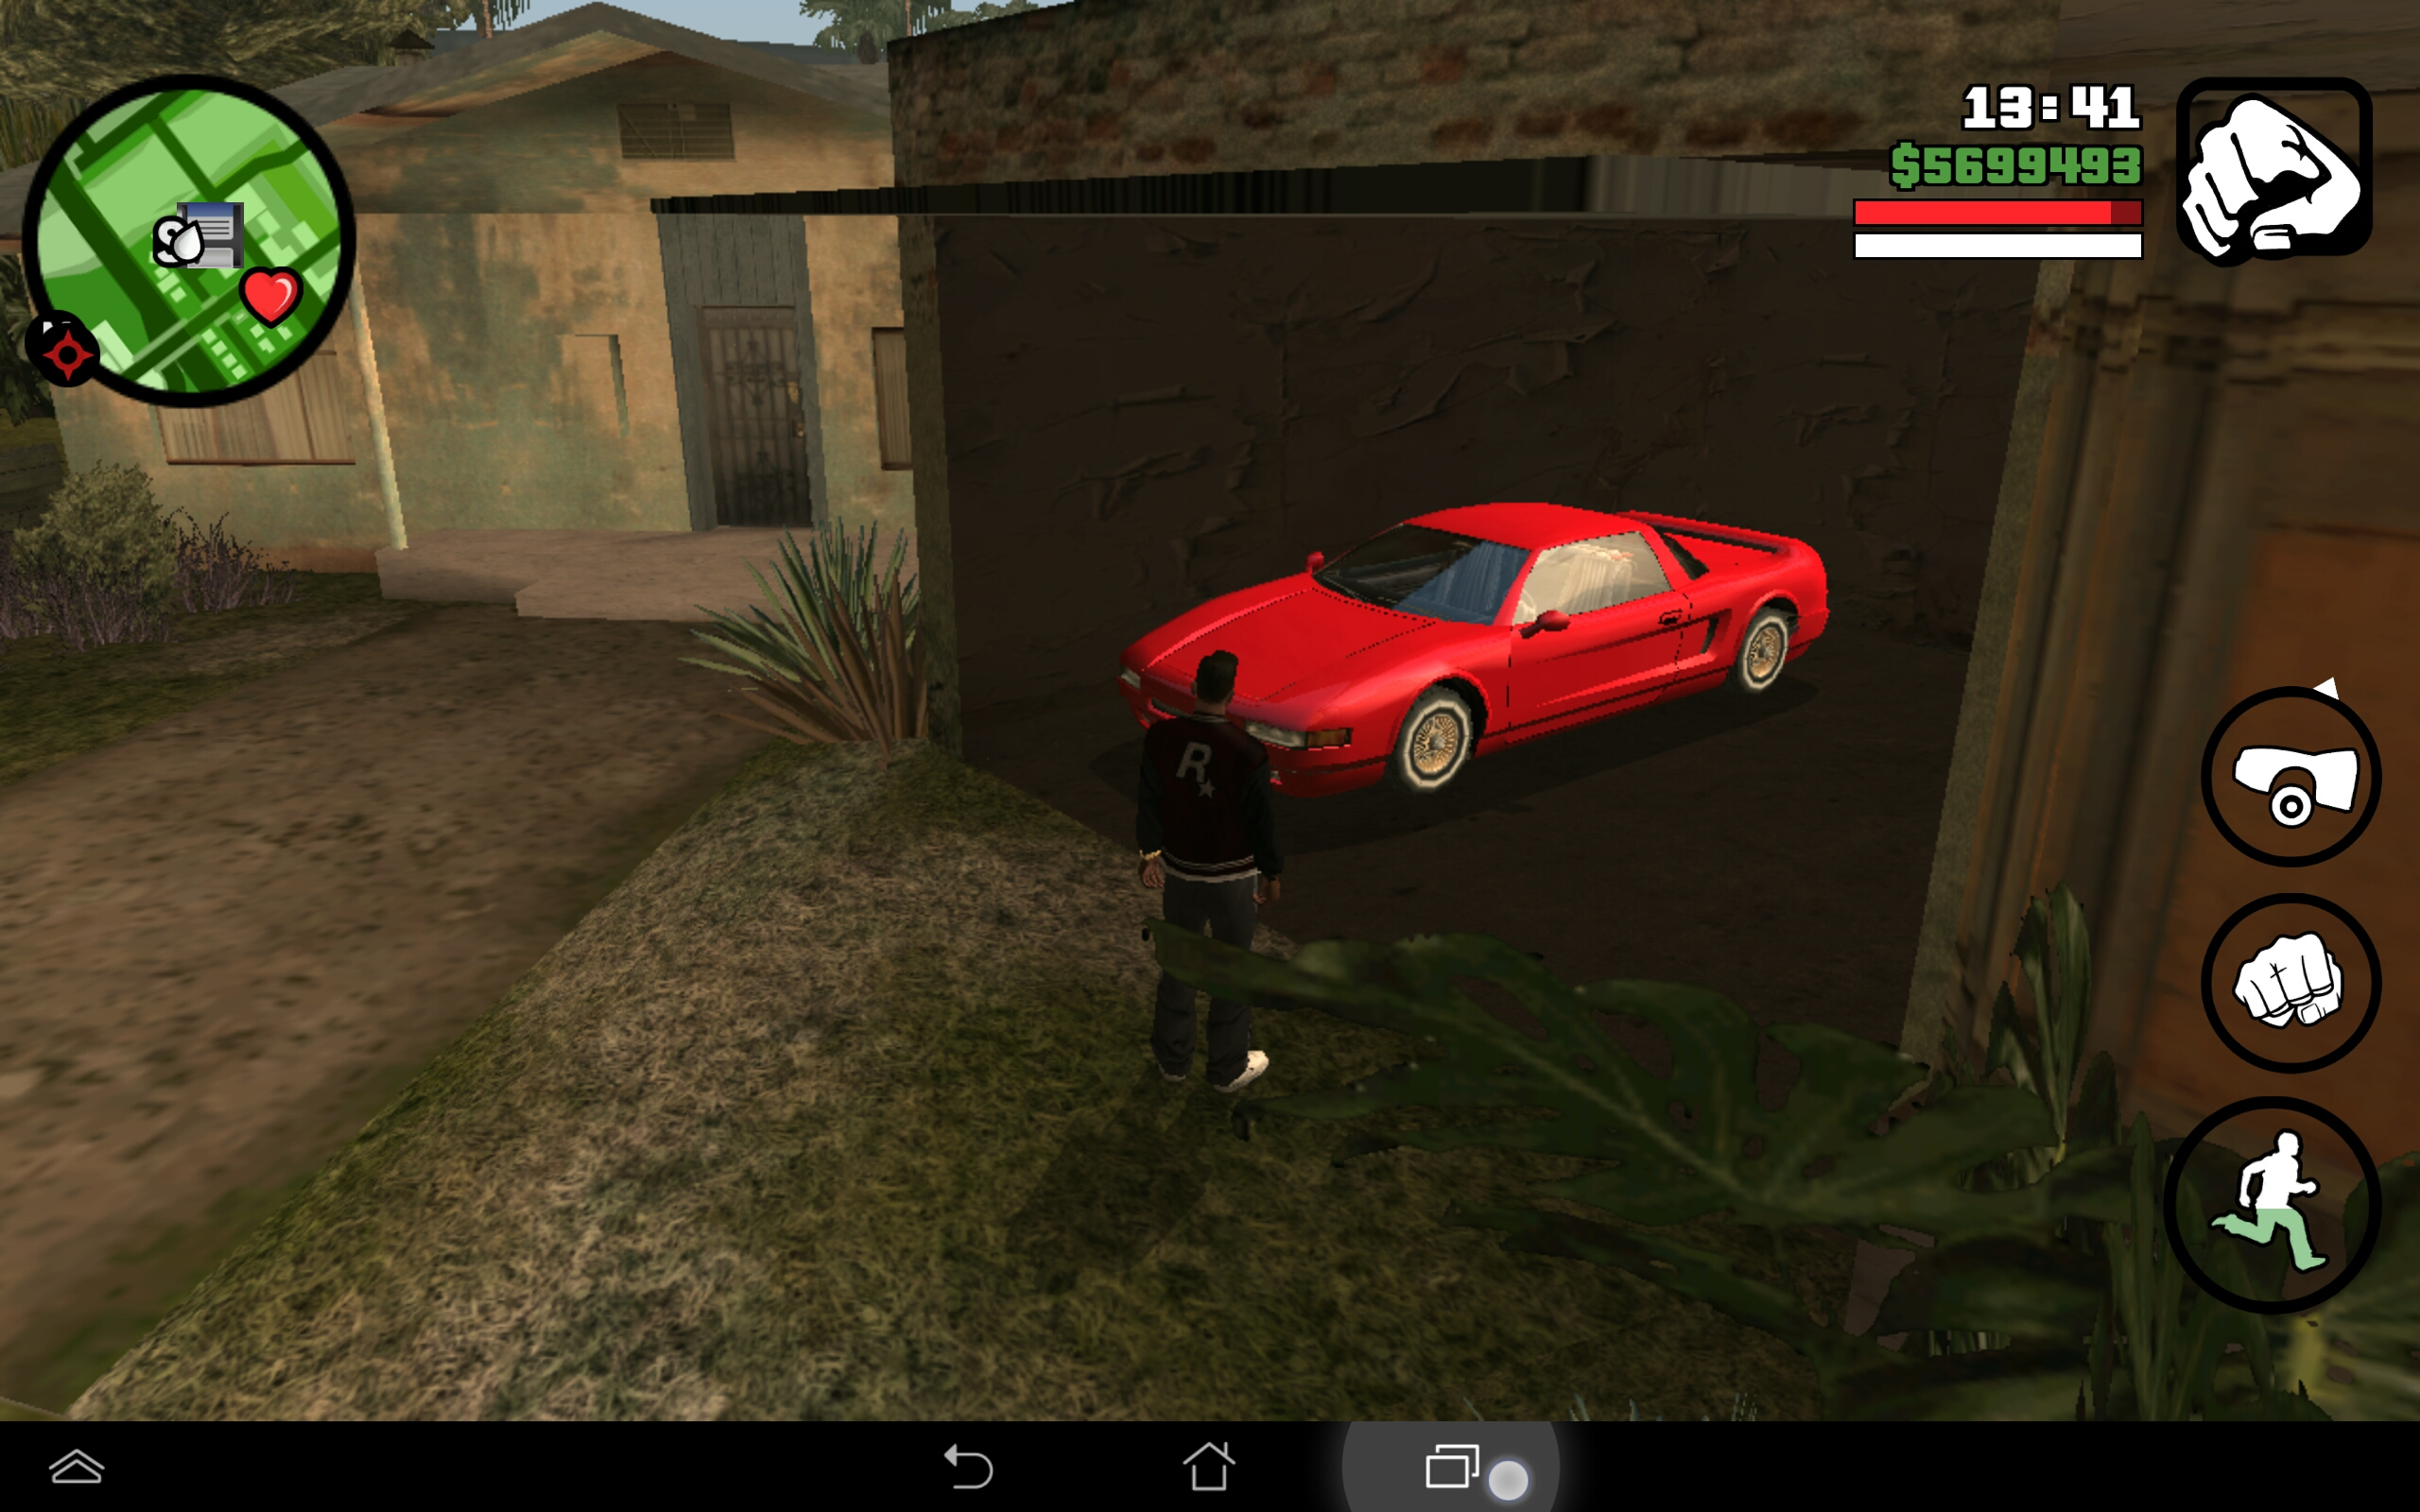 How to put 100% save game in GTA san andreas in android